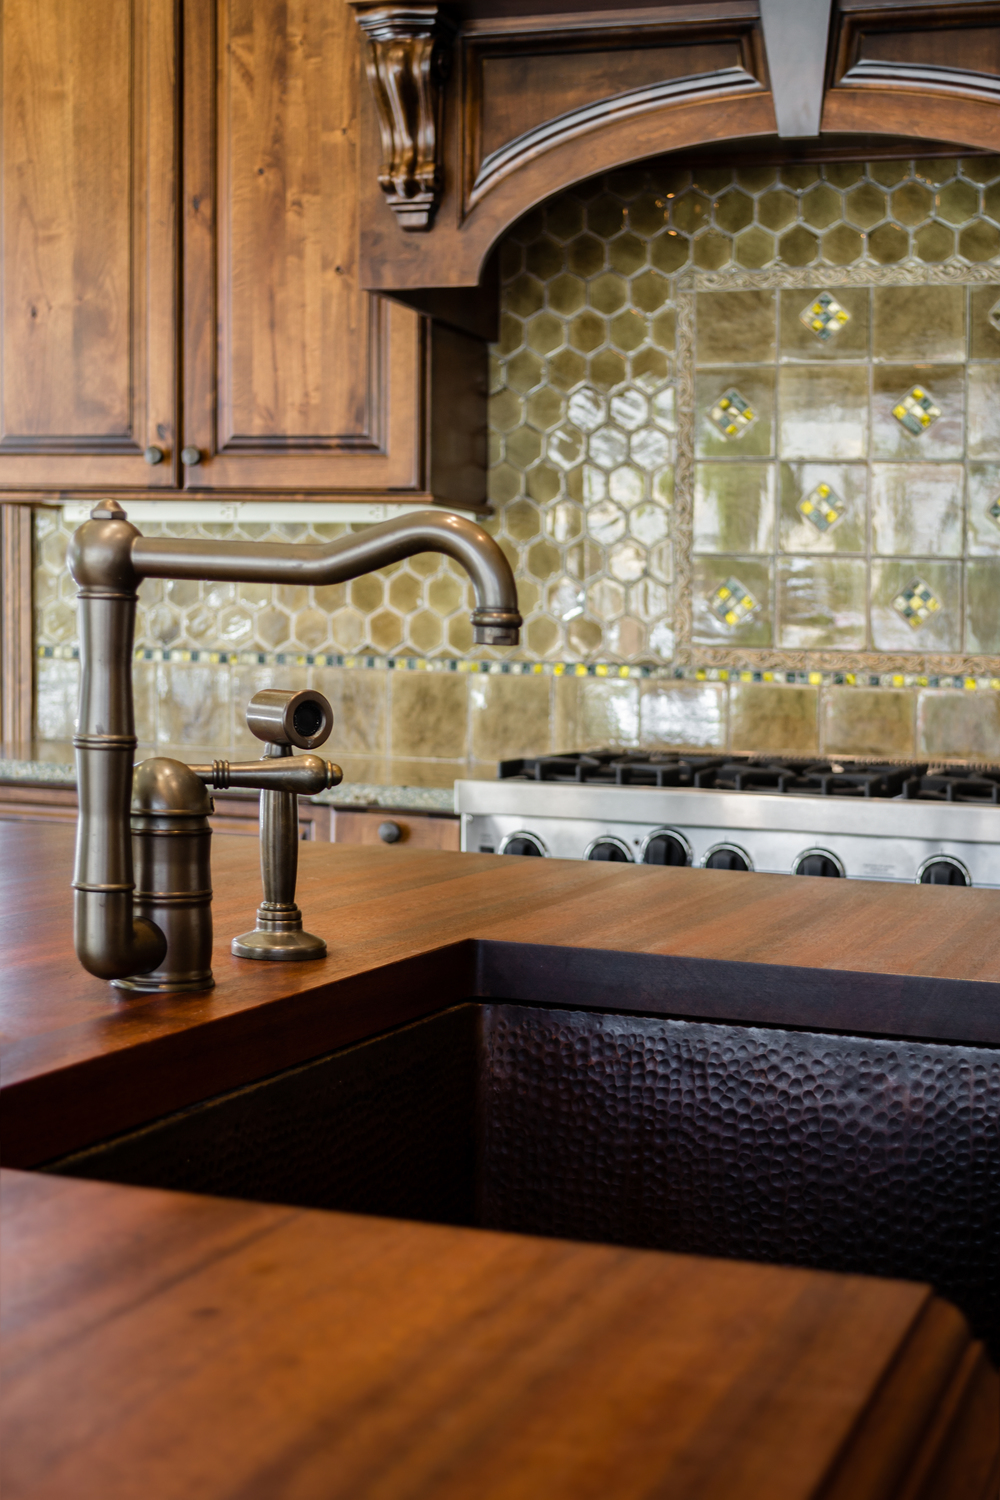 Rubbed Bronze Faucet Fixture for Insidesign Showroom, Atlanta, GA